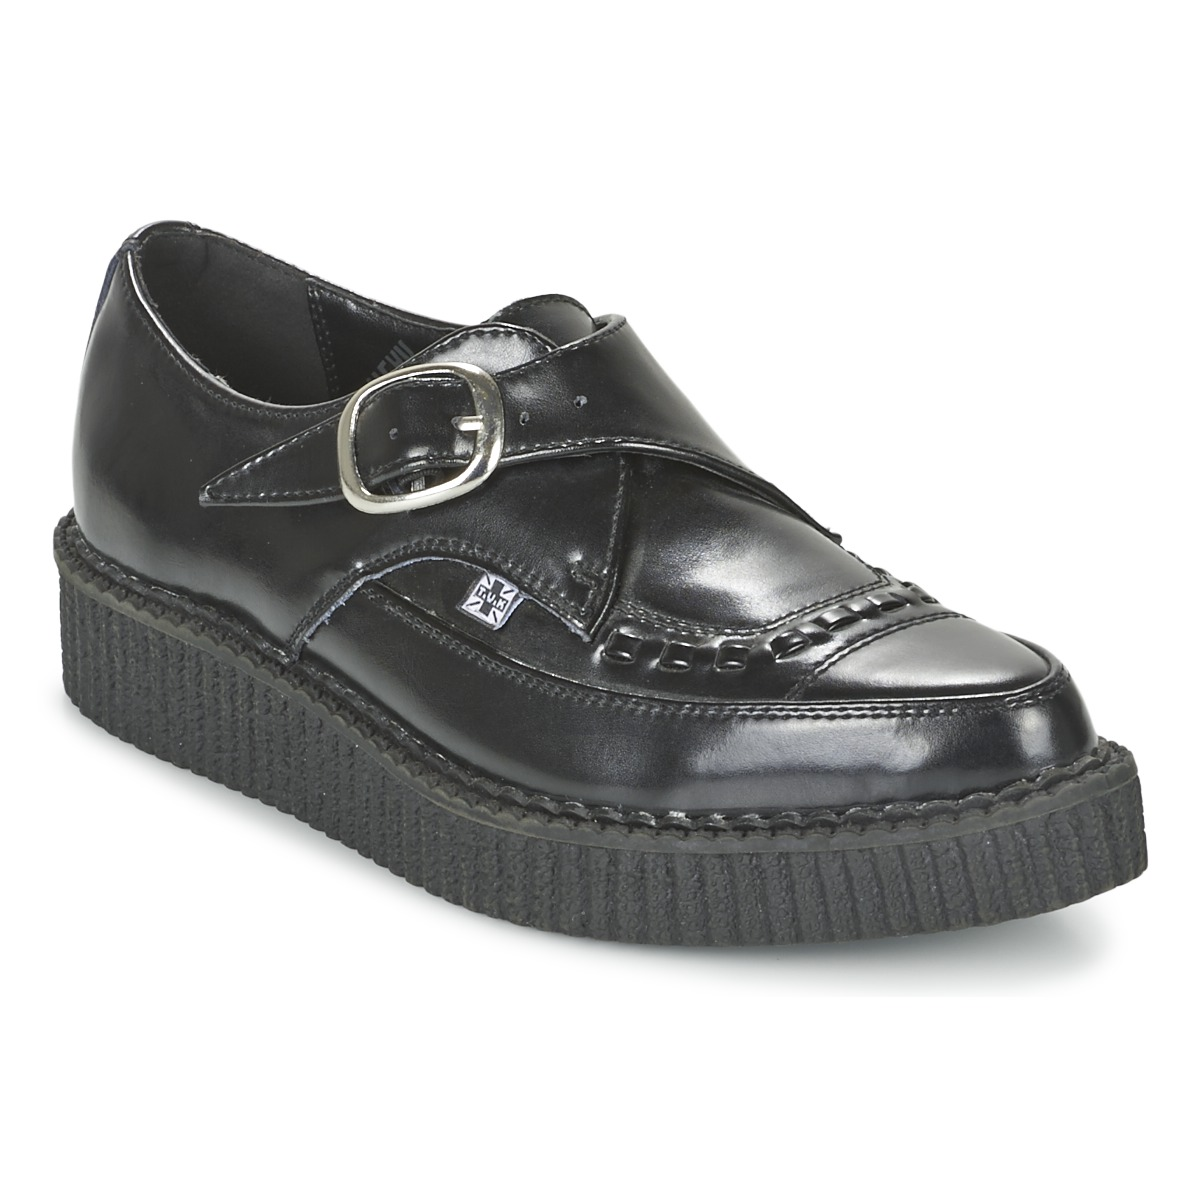 TUK POINTED CREEPERS Noir